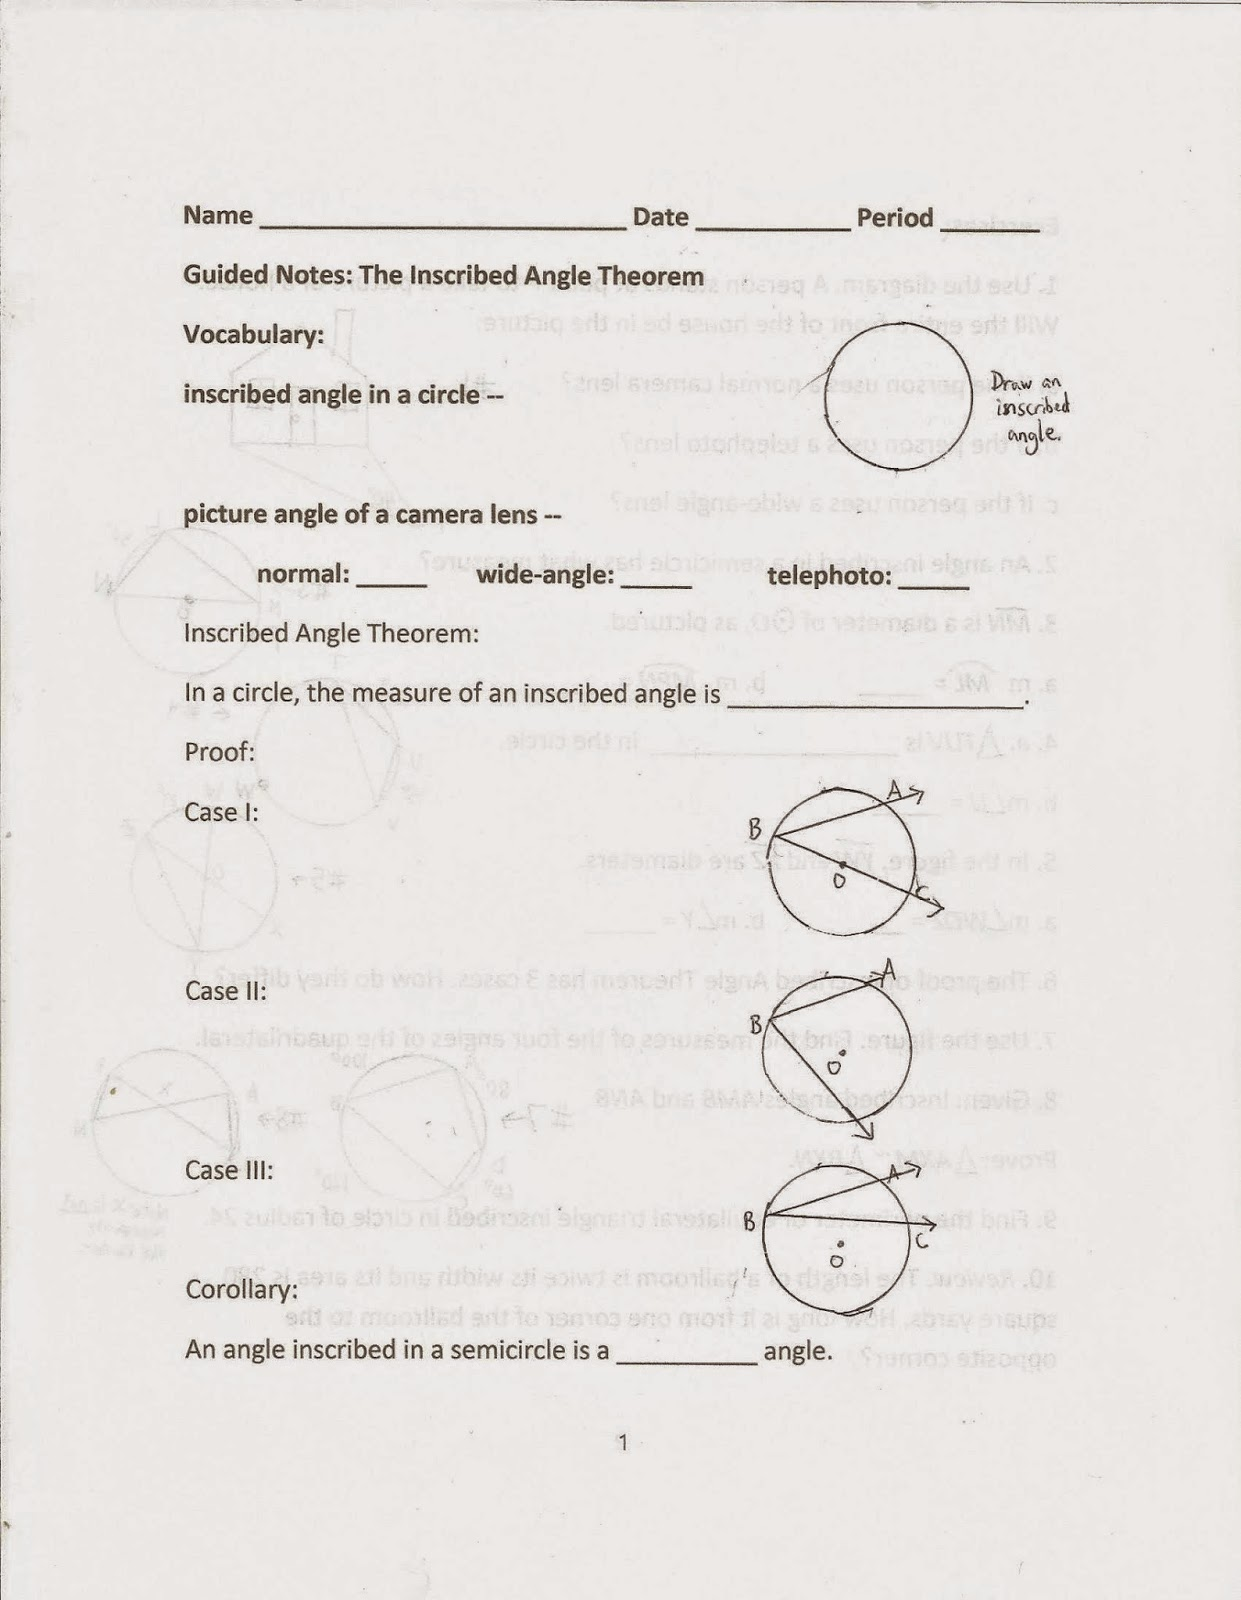 worksheet Inscribed Angle Worksheet geometry common core style section 15 3 the inscribed angle i briefly mention this on my worksheet but a full consideration of camera angles doesnt occur until next text